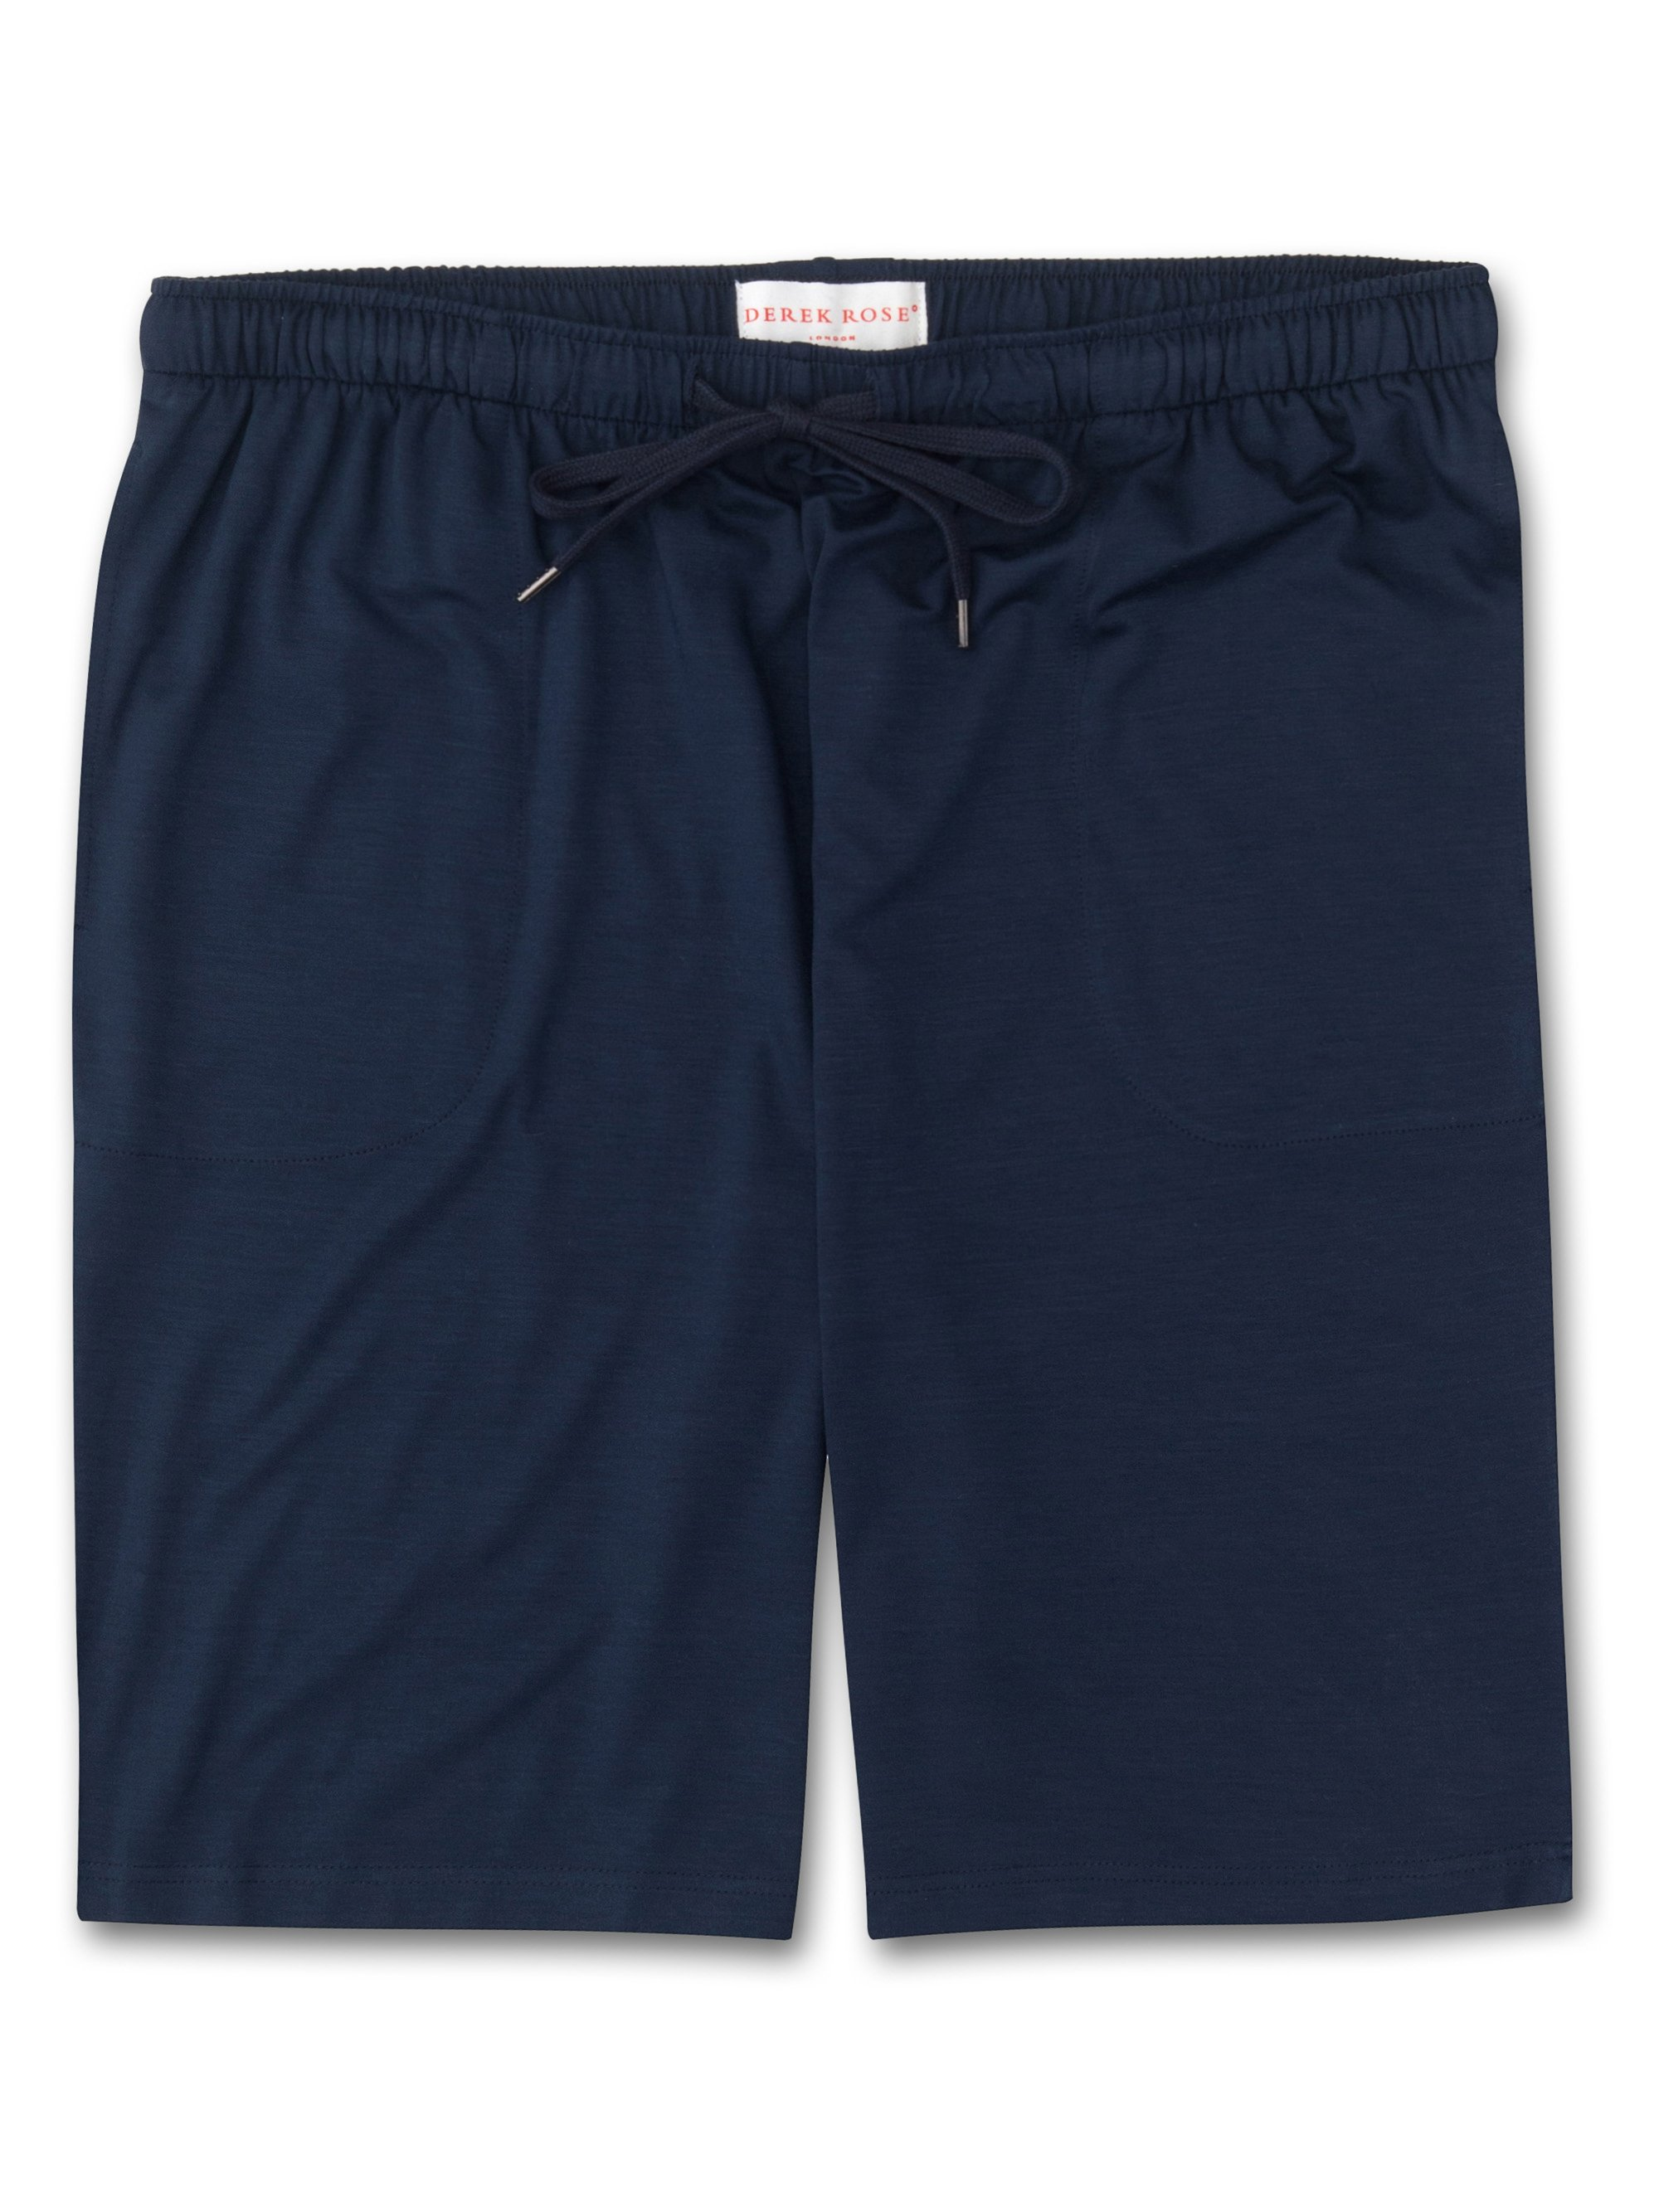 Men's Jersey Shorts Basel Micro Modal Stretch Navy